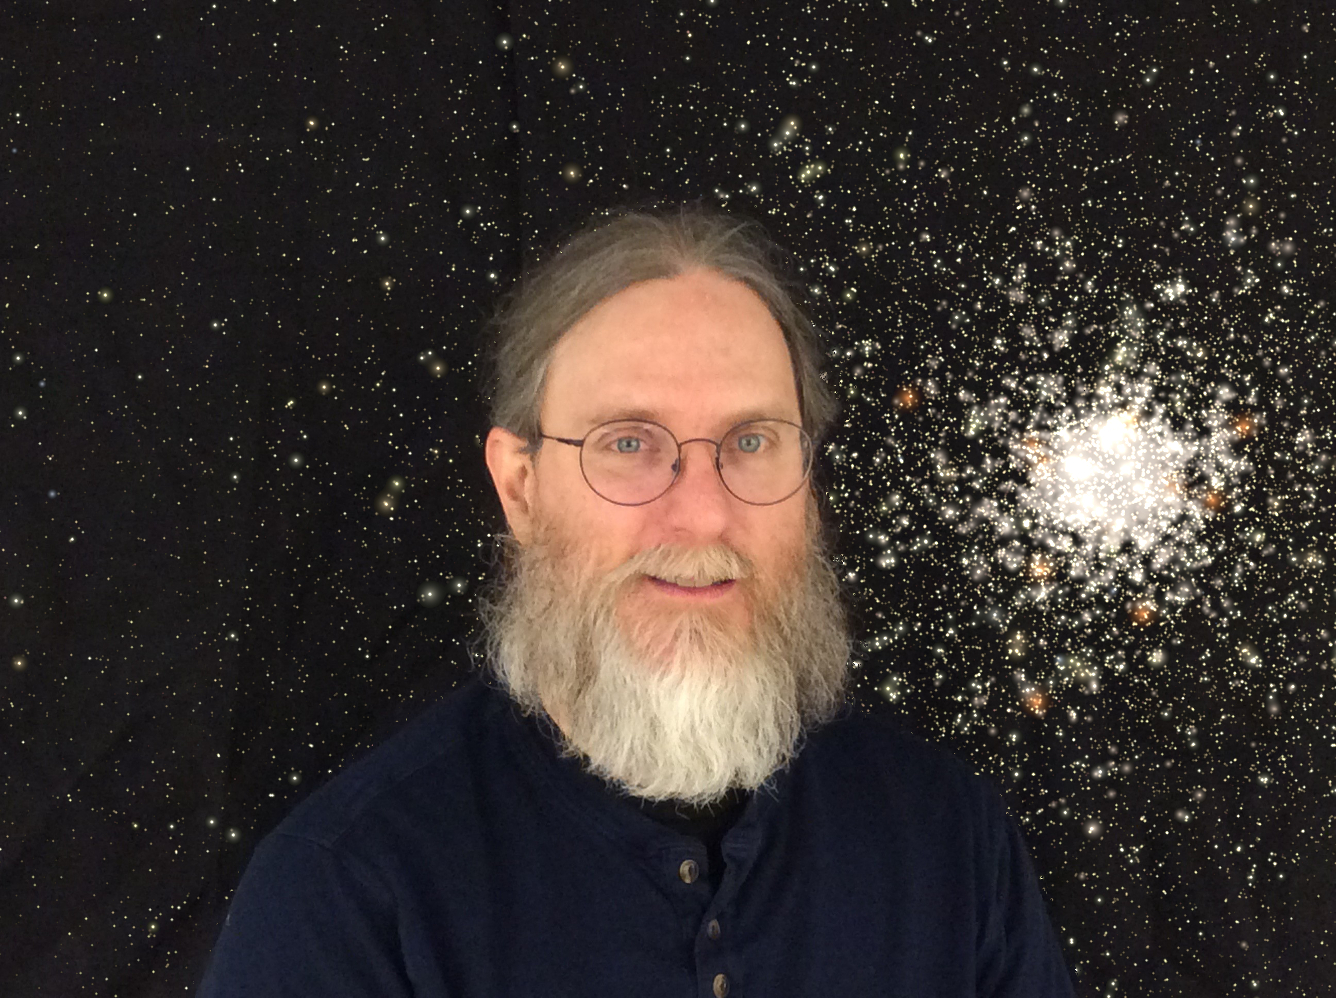 Richard Rees with globular cluster